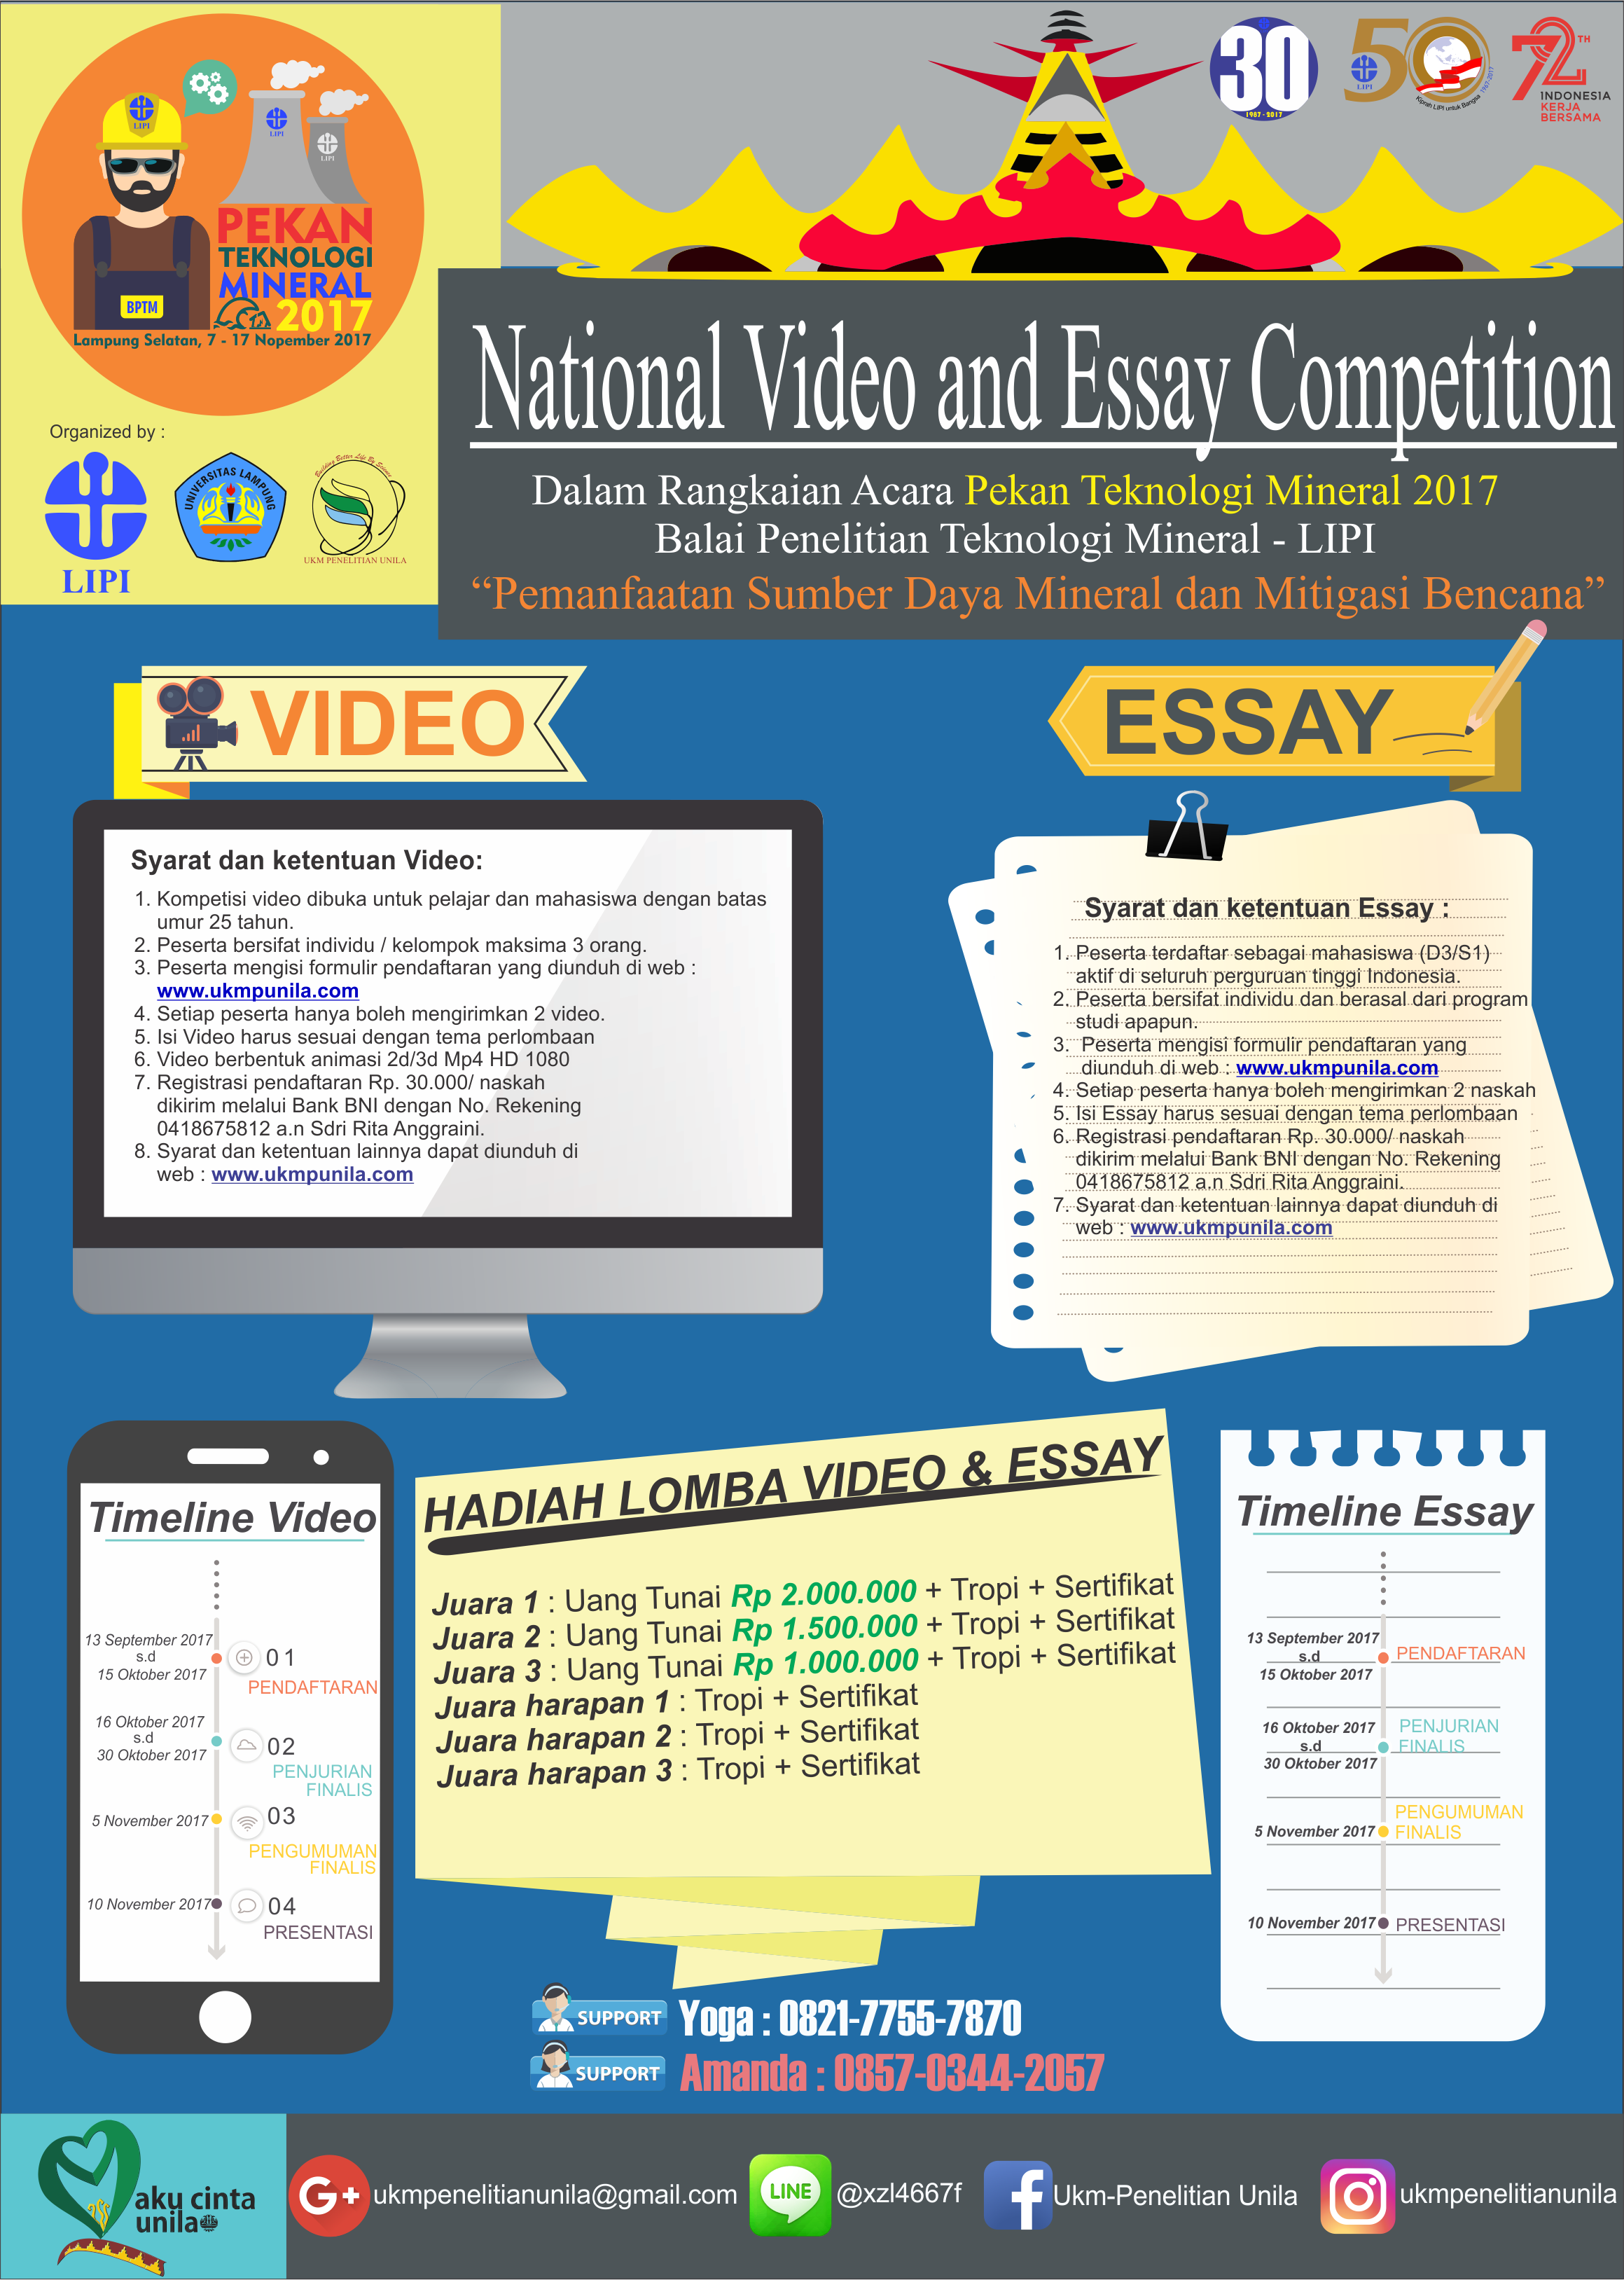 VIDEO-ESSAY COMPETITION